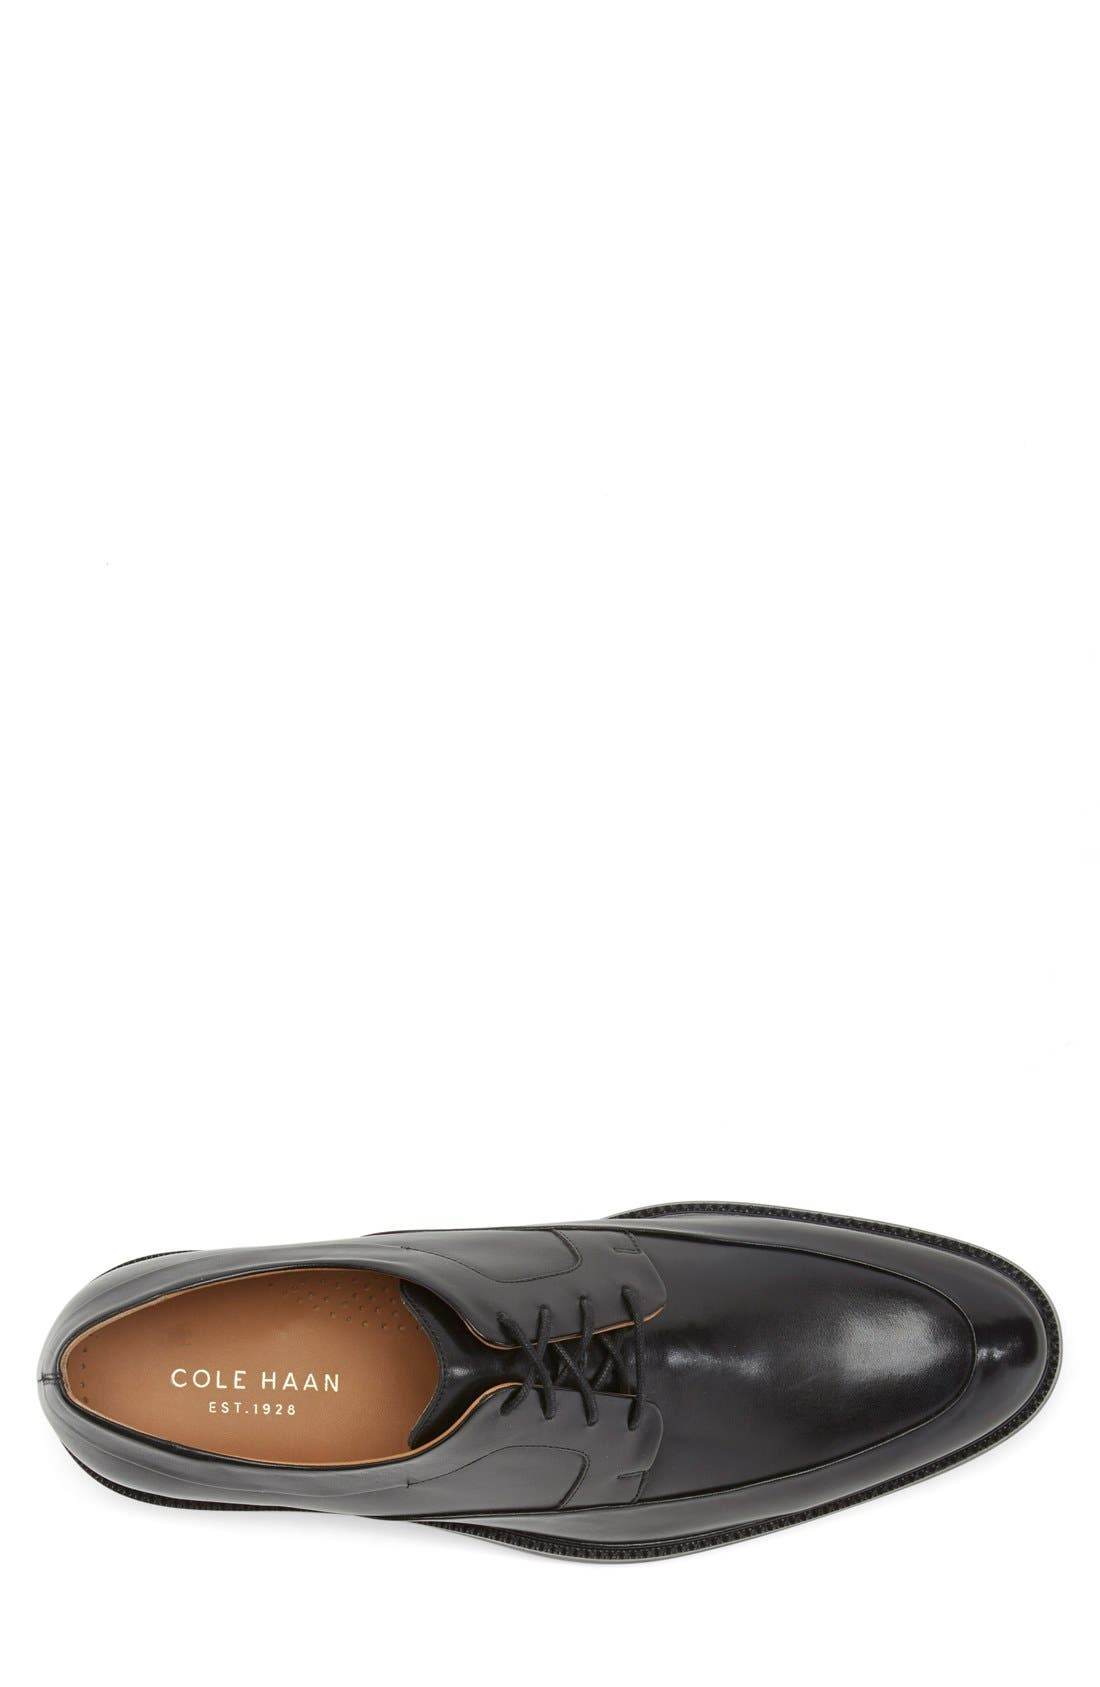 COLE HAAN, 'Warren' Apron Toe Derby, Alternate thumbnail 4, color, BLACK LEATHER